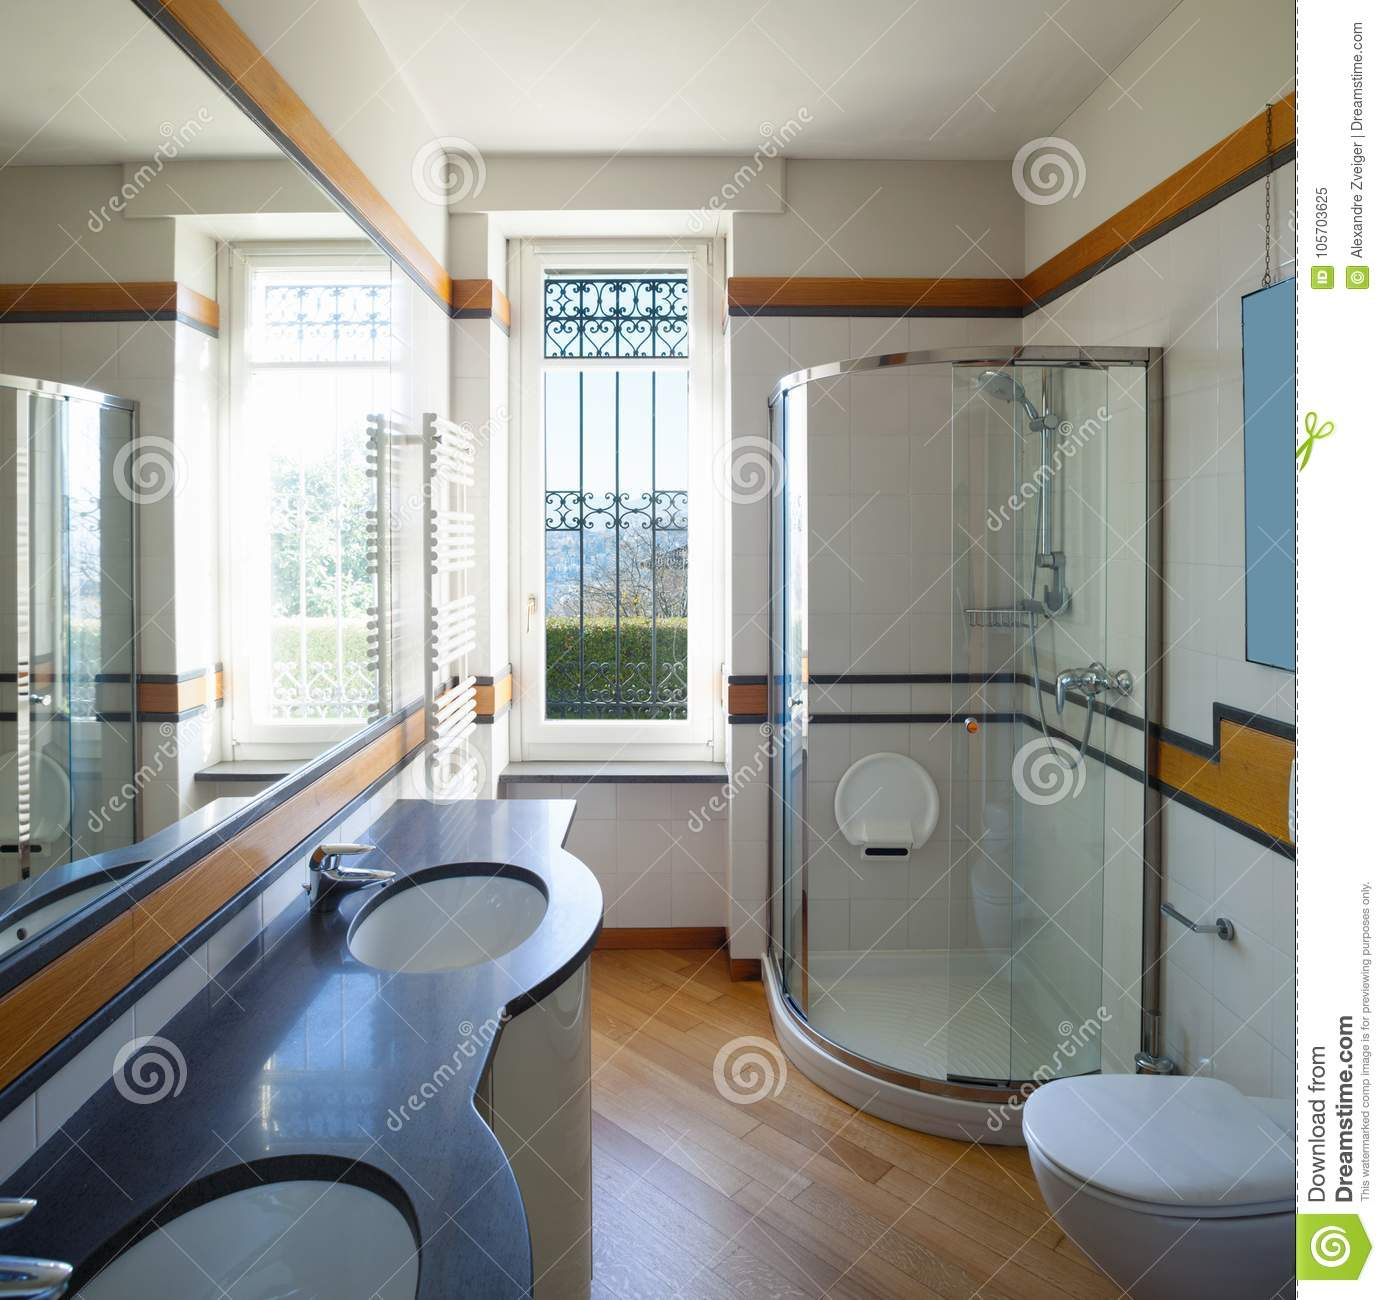 . Modern Bathroom With Large Mirror Stock Image   Image of light